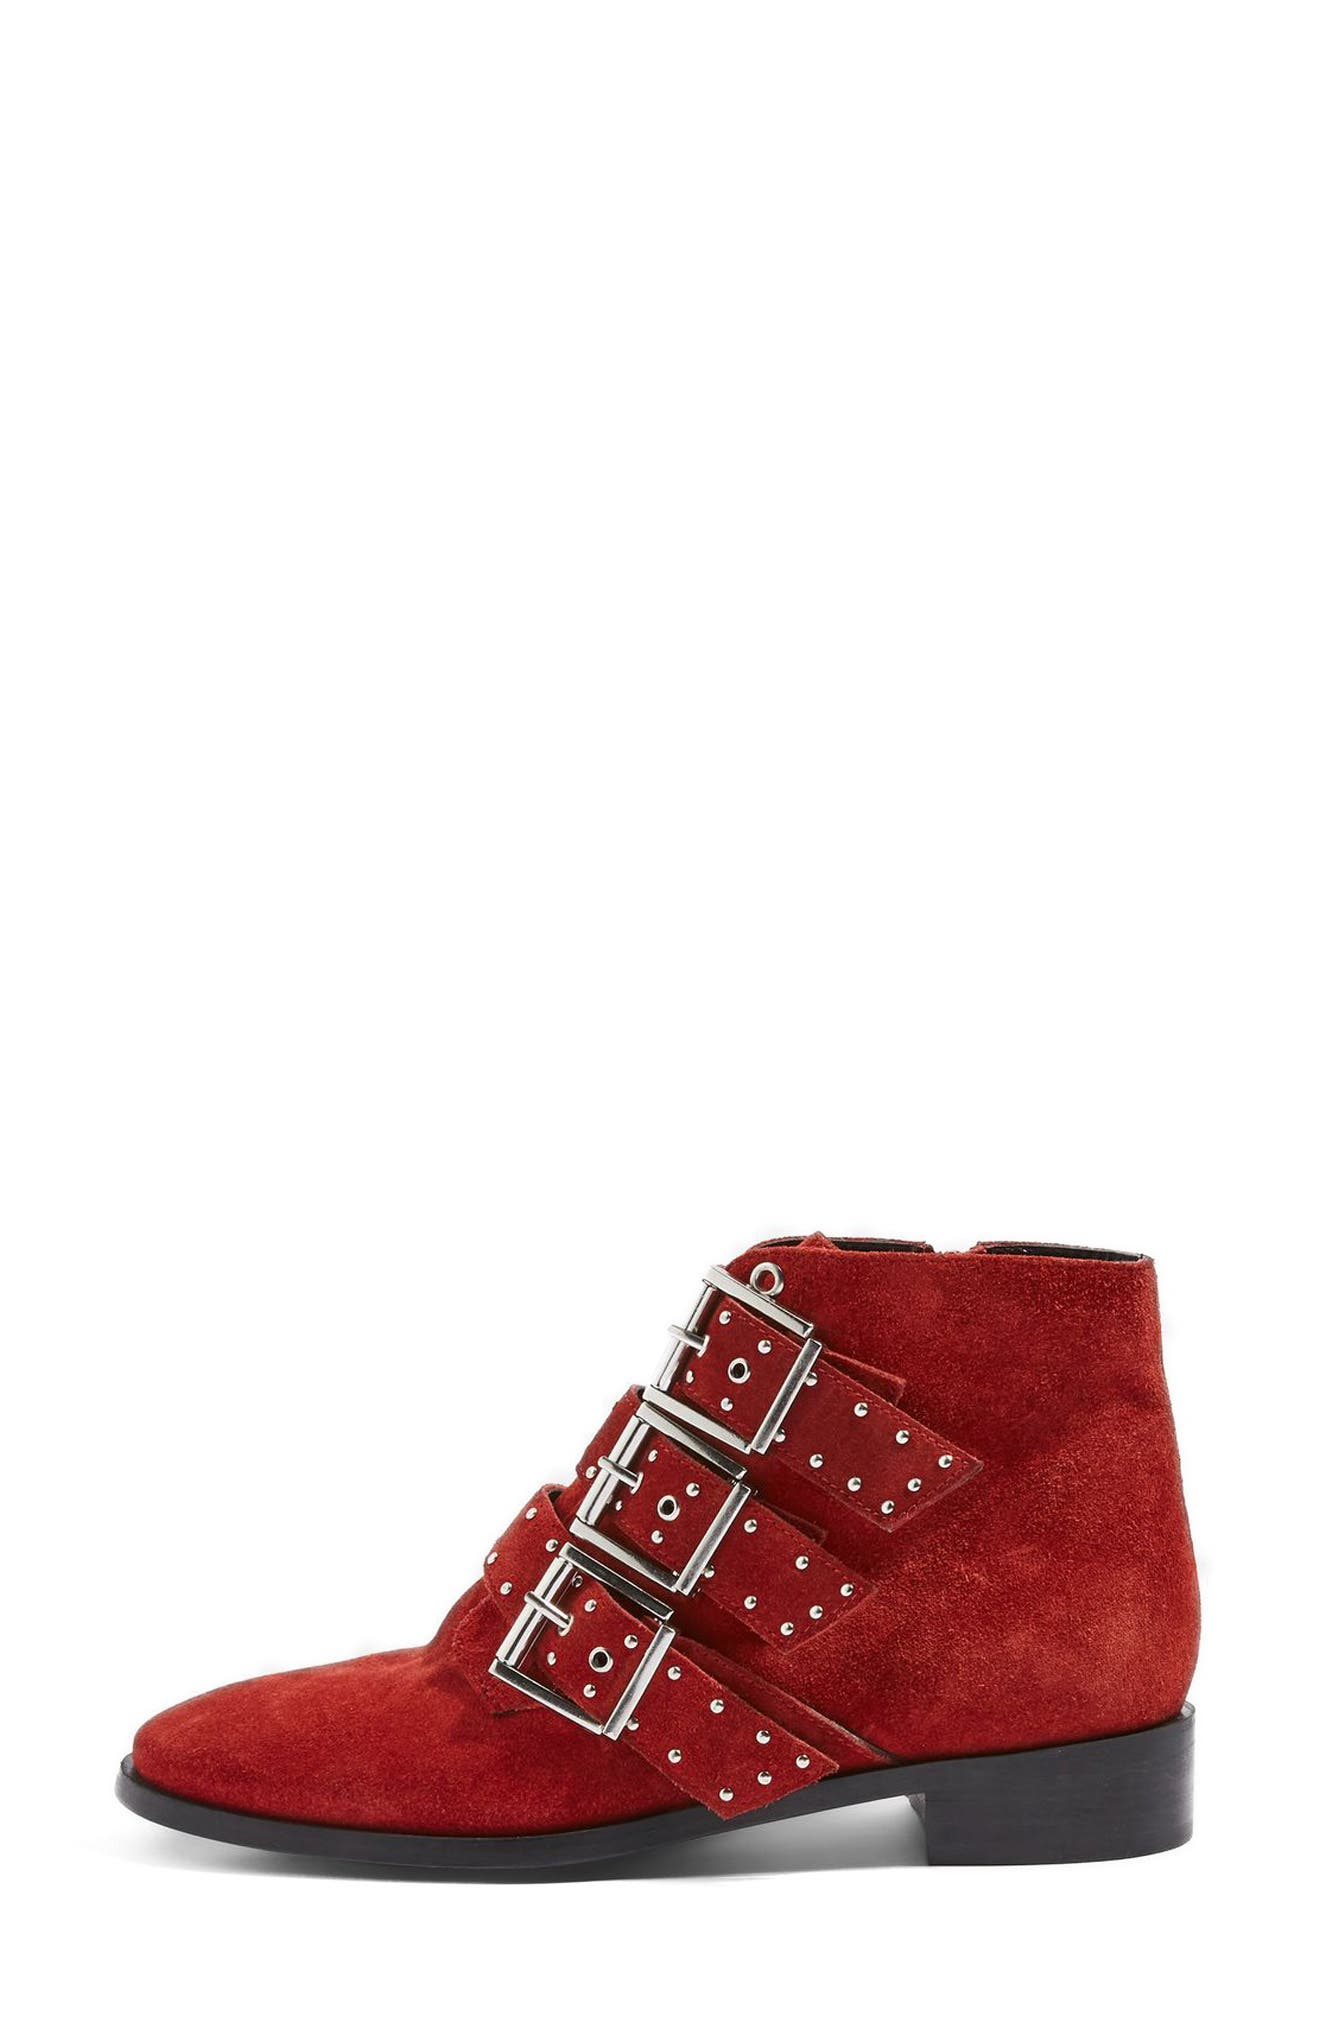 Krown Studded Bootie,                             Alternate thumbnail 7, color,                             Red